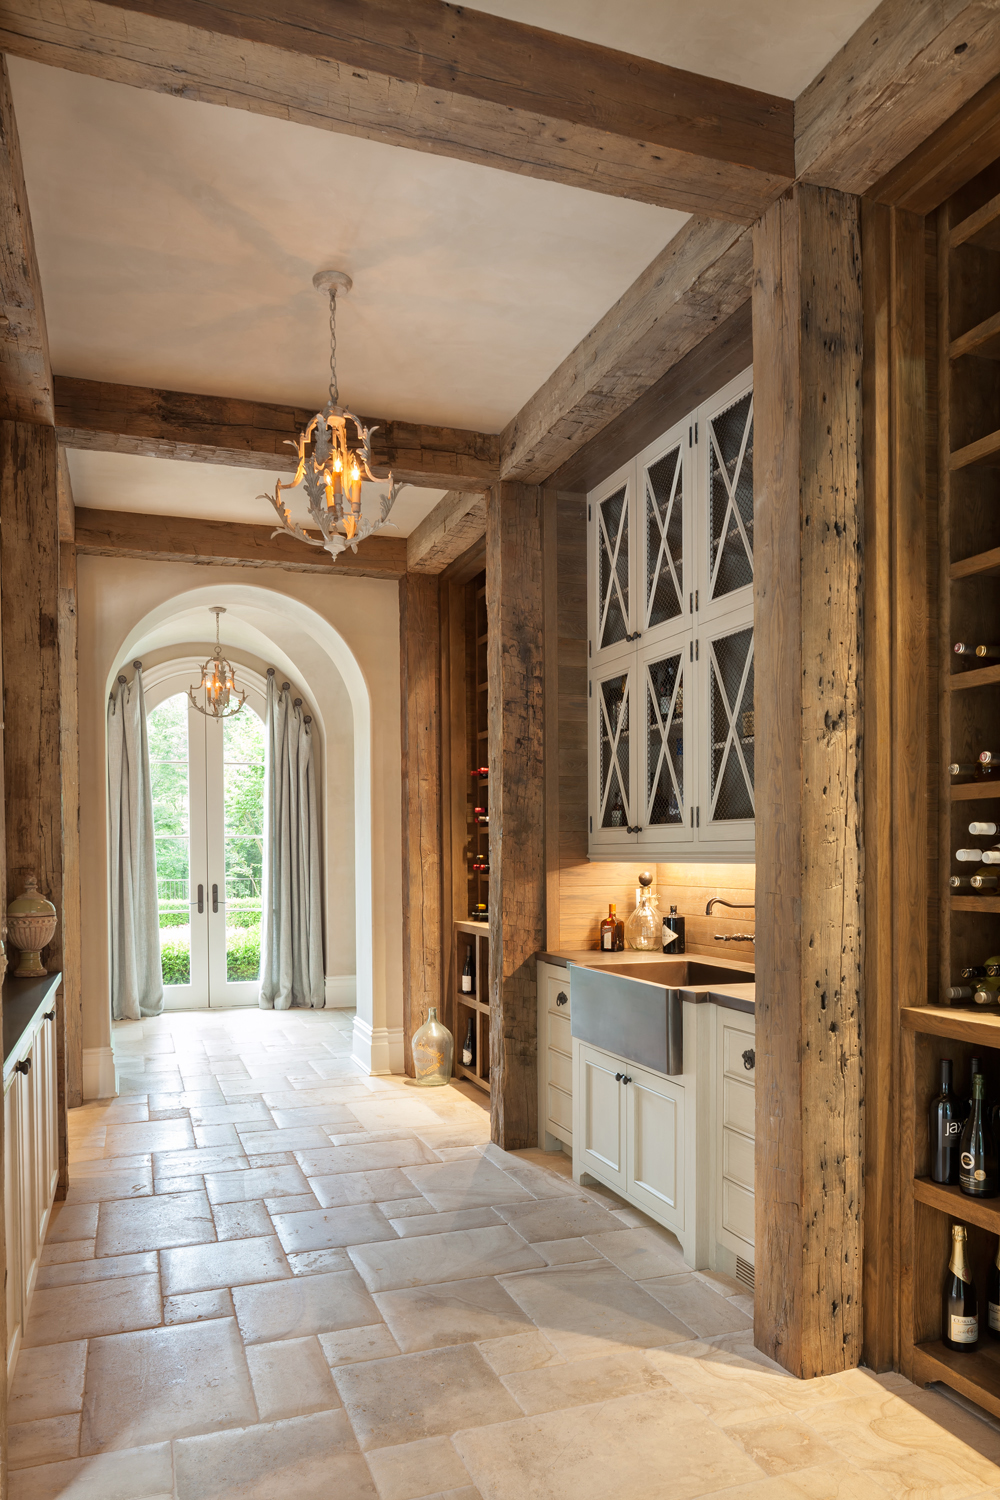 Wide hall serves as bar and wine gallery with open wine storage of Harrison Design classical farm style abode